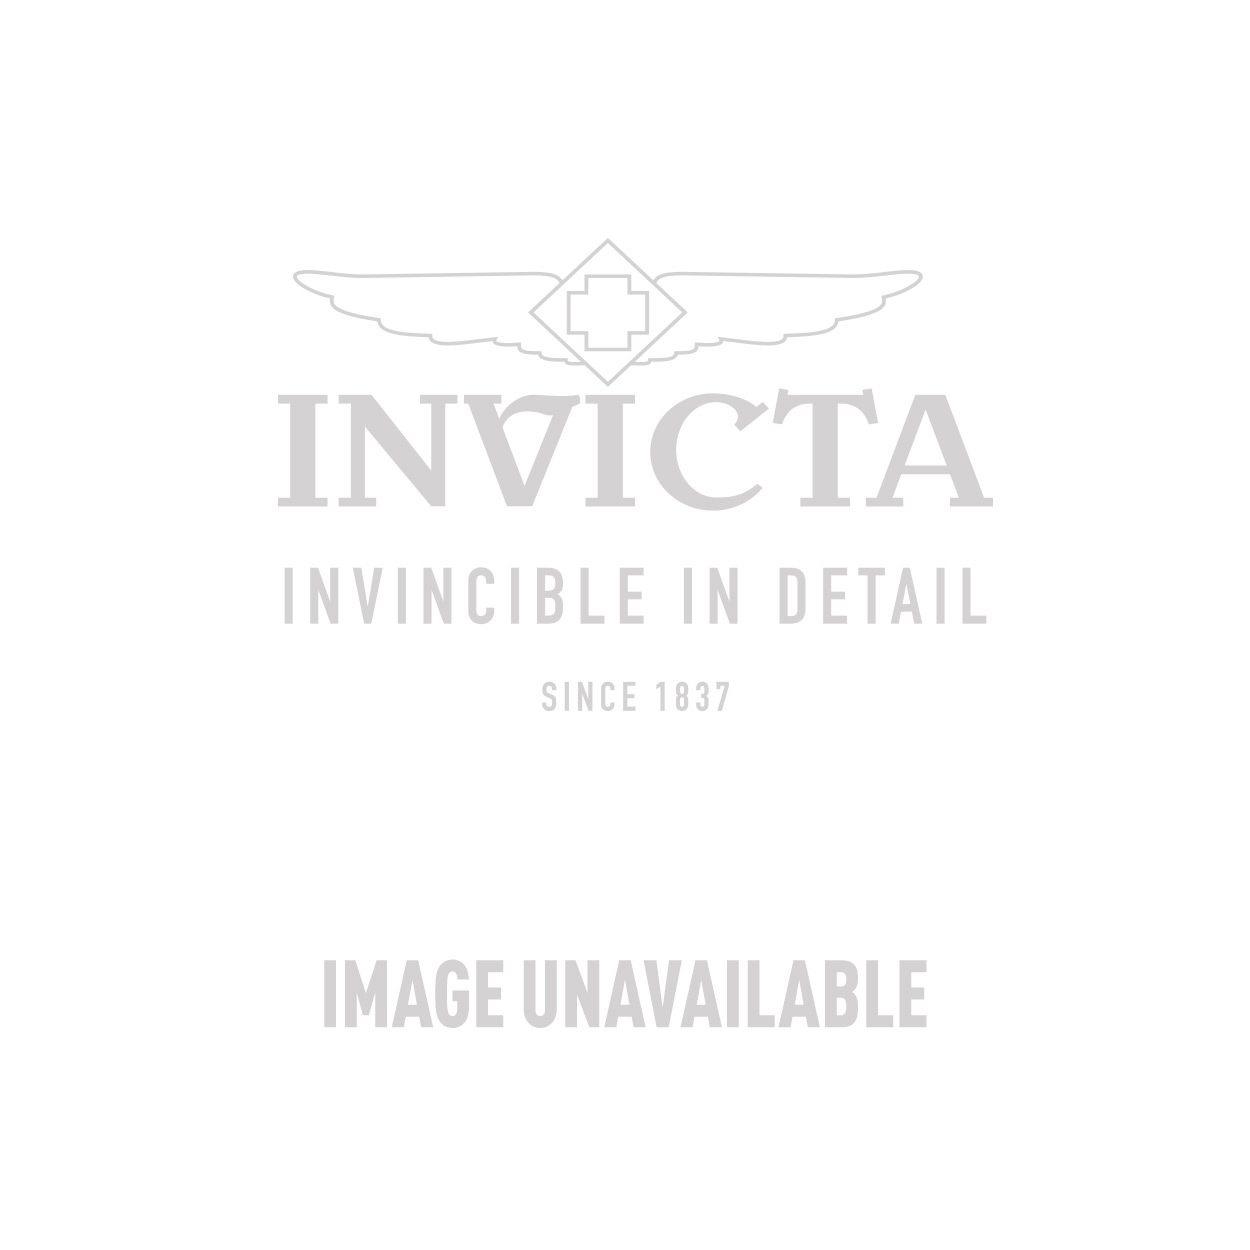 Invicta Coalition Forces Swiss Made Quartz Watch - Rose Gold case with Rose Gold tone Stainless Steel band - Model 11660